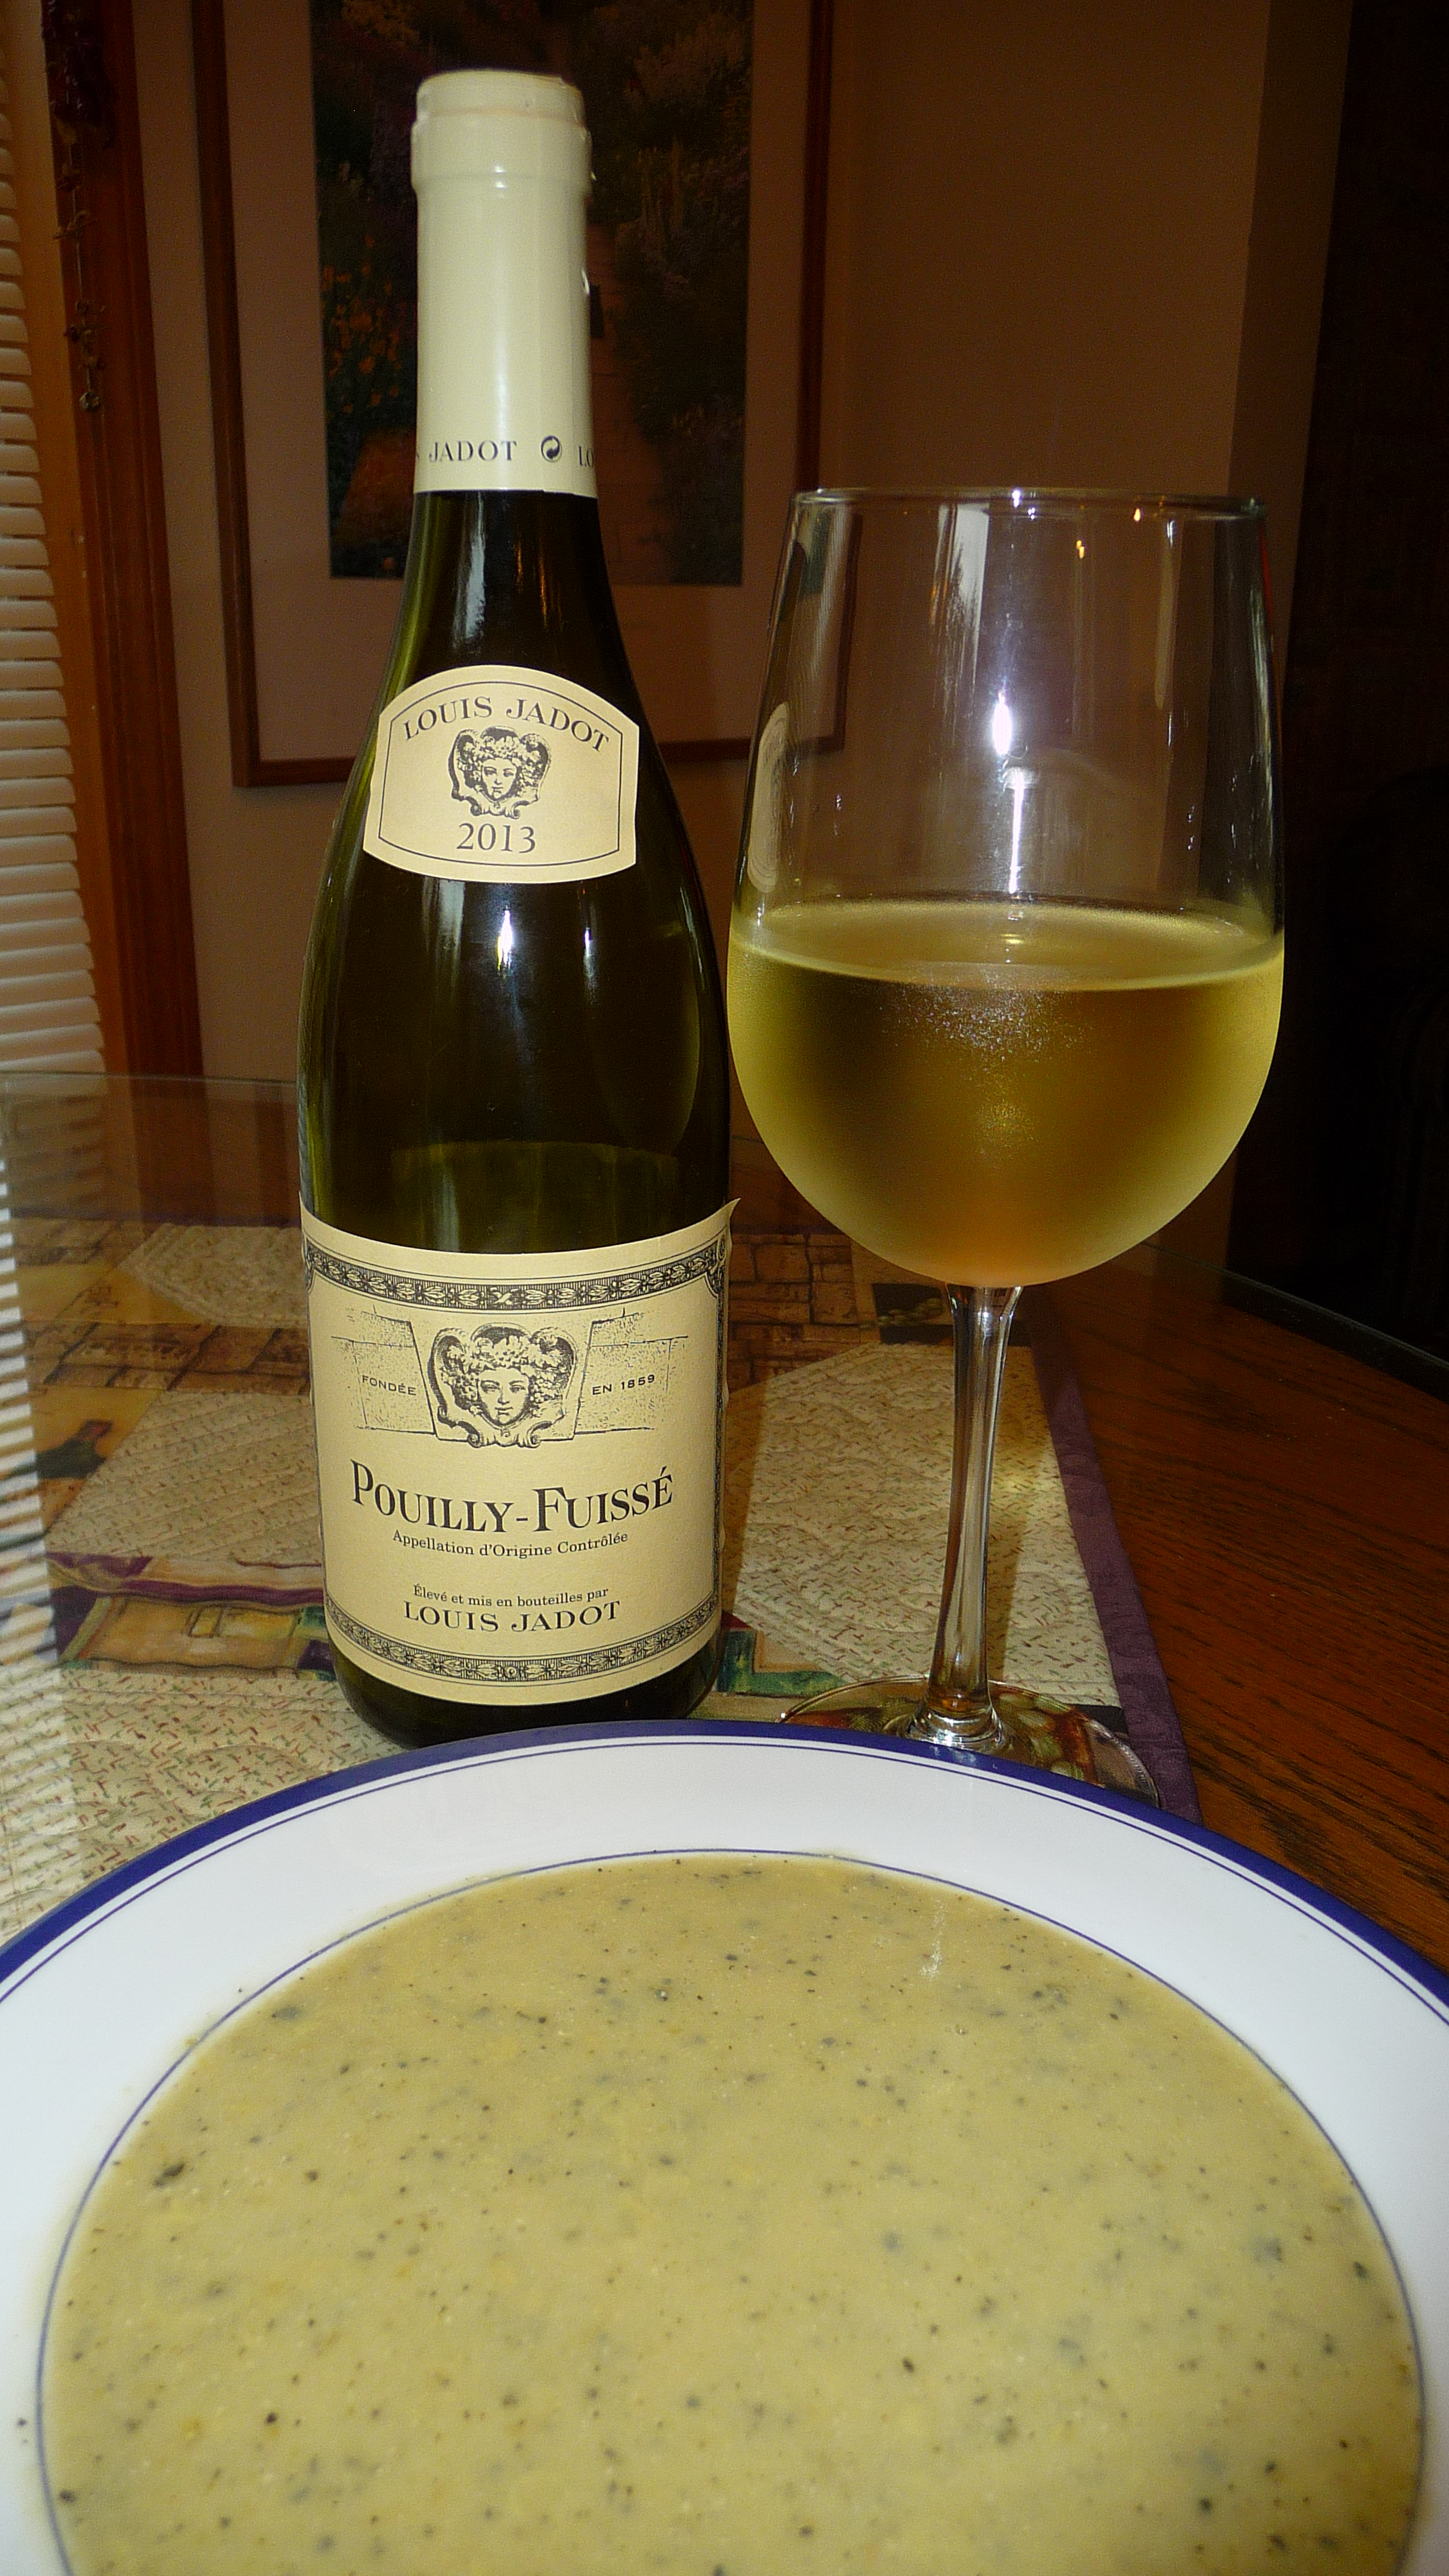 This 2013 Louis Jadot Pouilly-Fuissé paired nicely with the rich mouth feel and pepper seasoning of cream of zucchini soup.